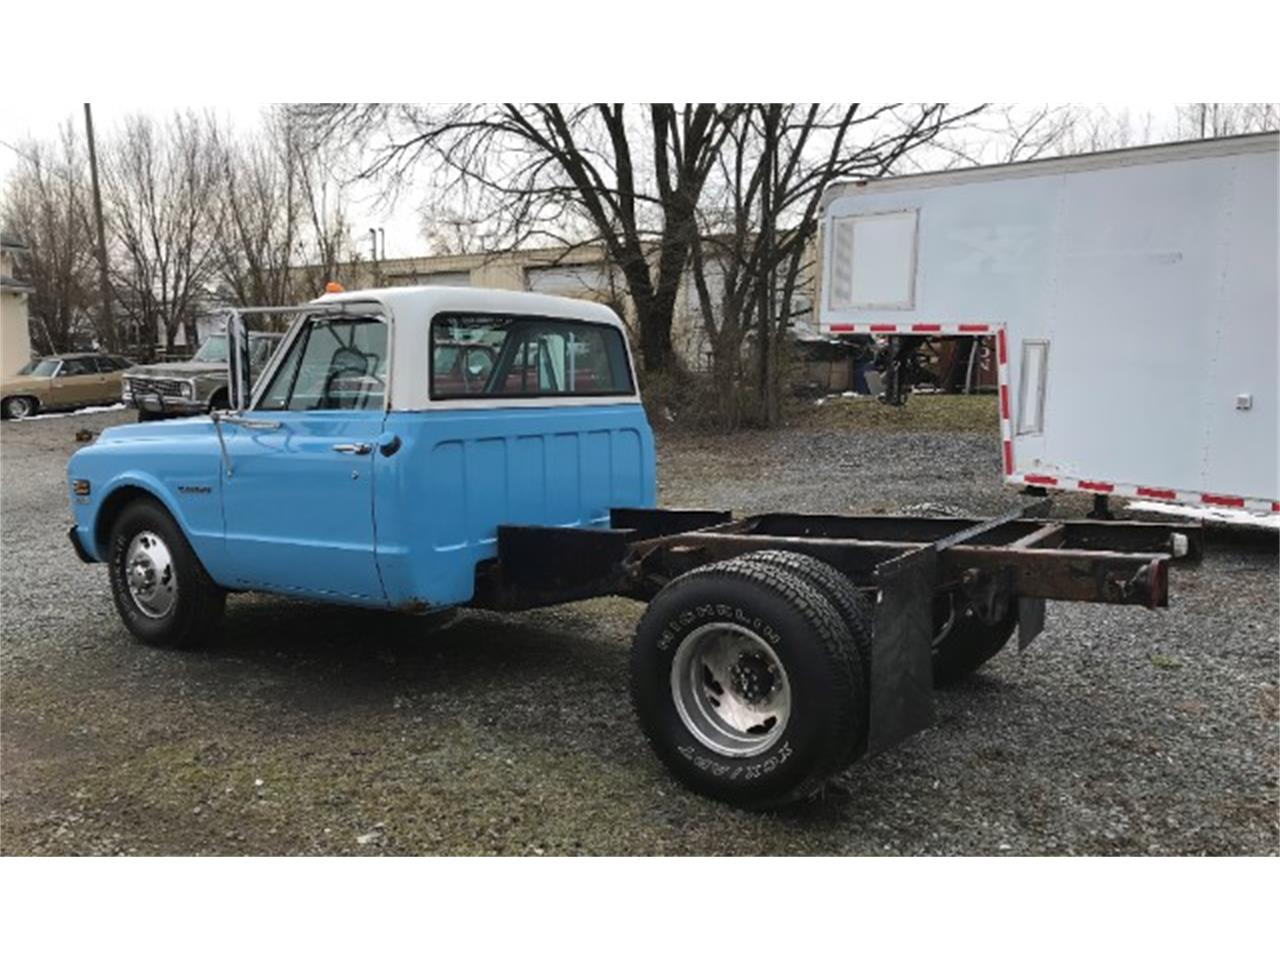 1971 Chevrolet 1 Ton Truck for sale in Harpers Ferry, WV – photo 4